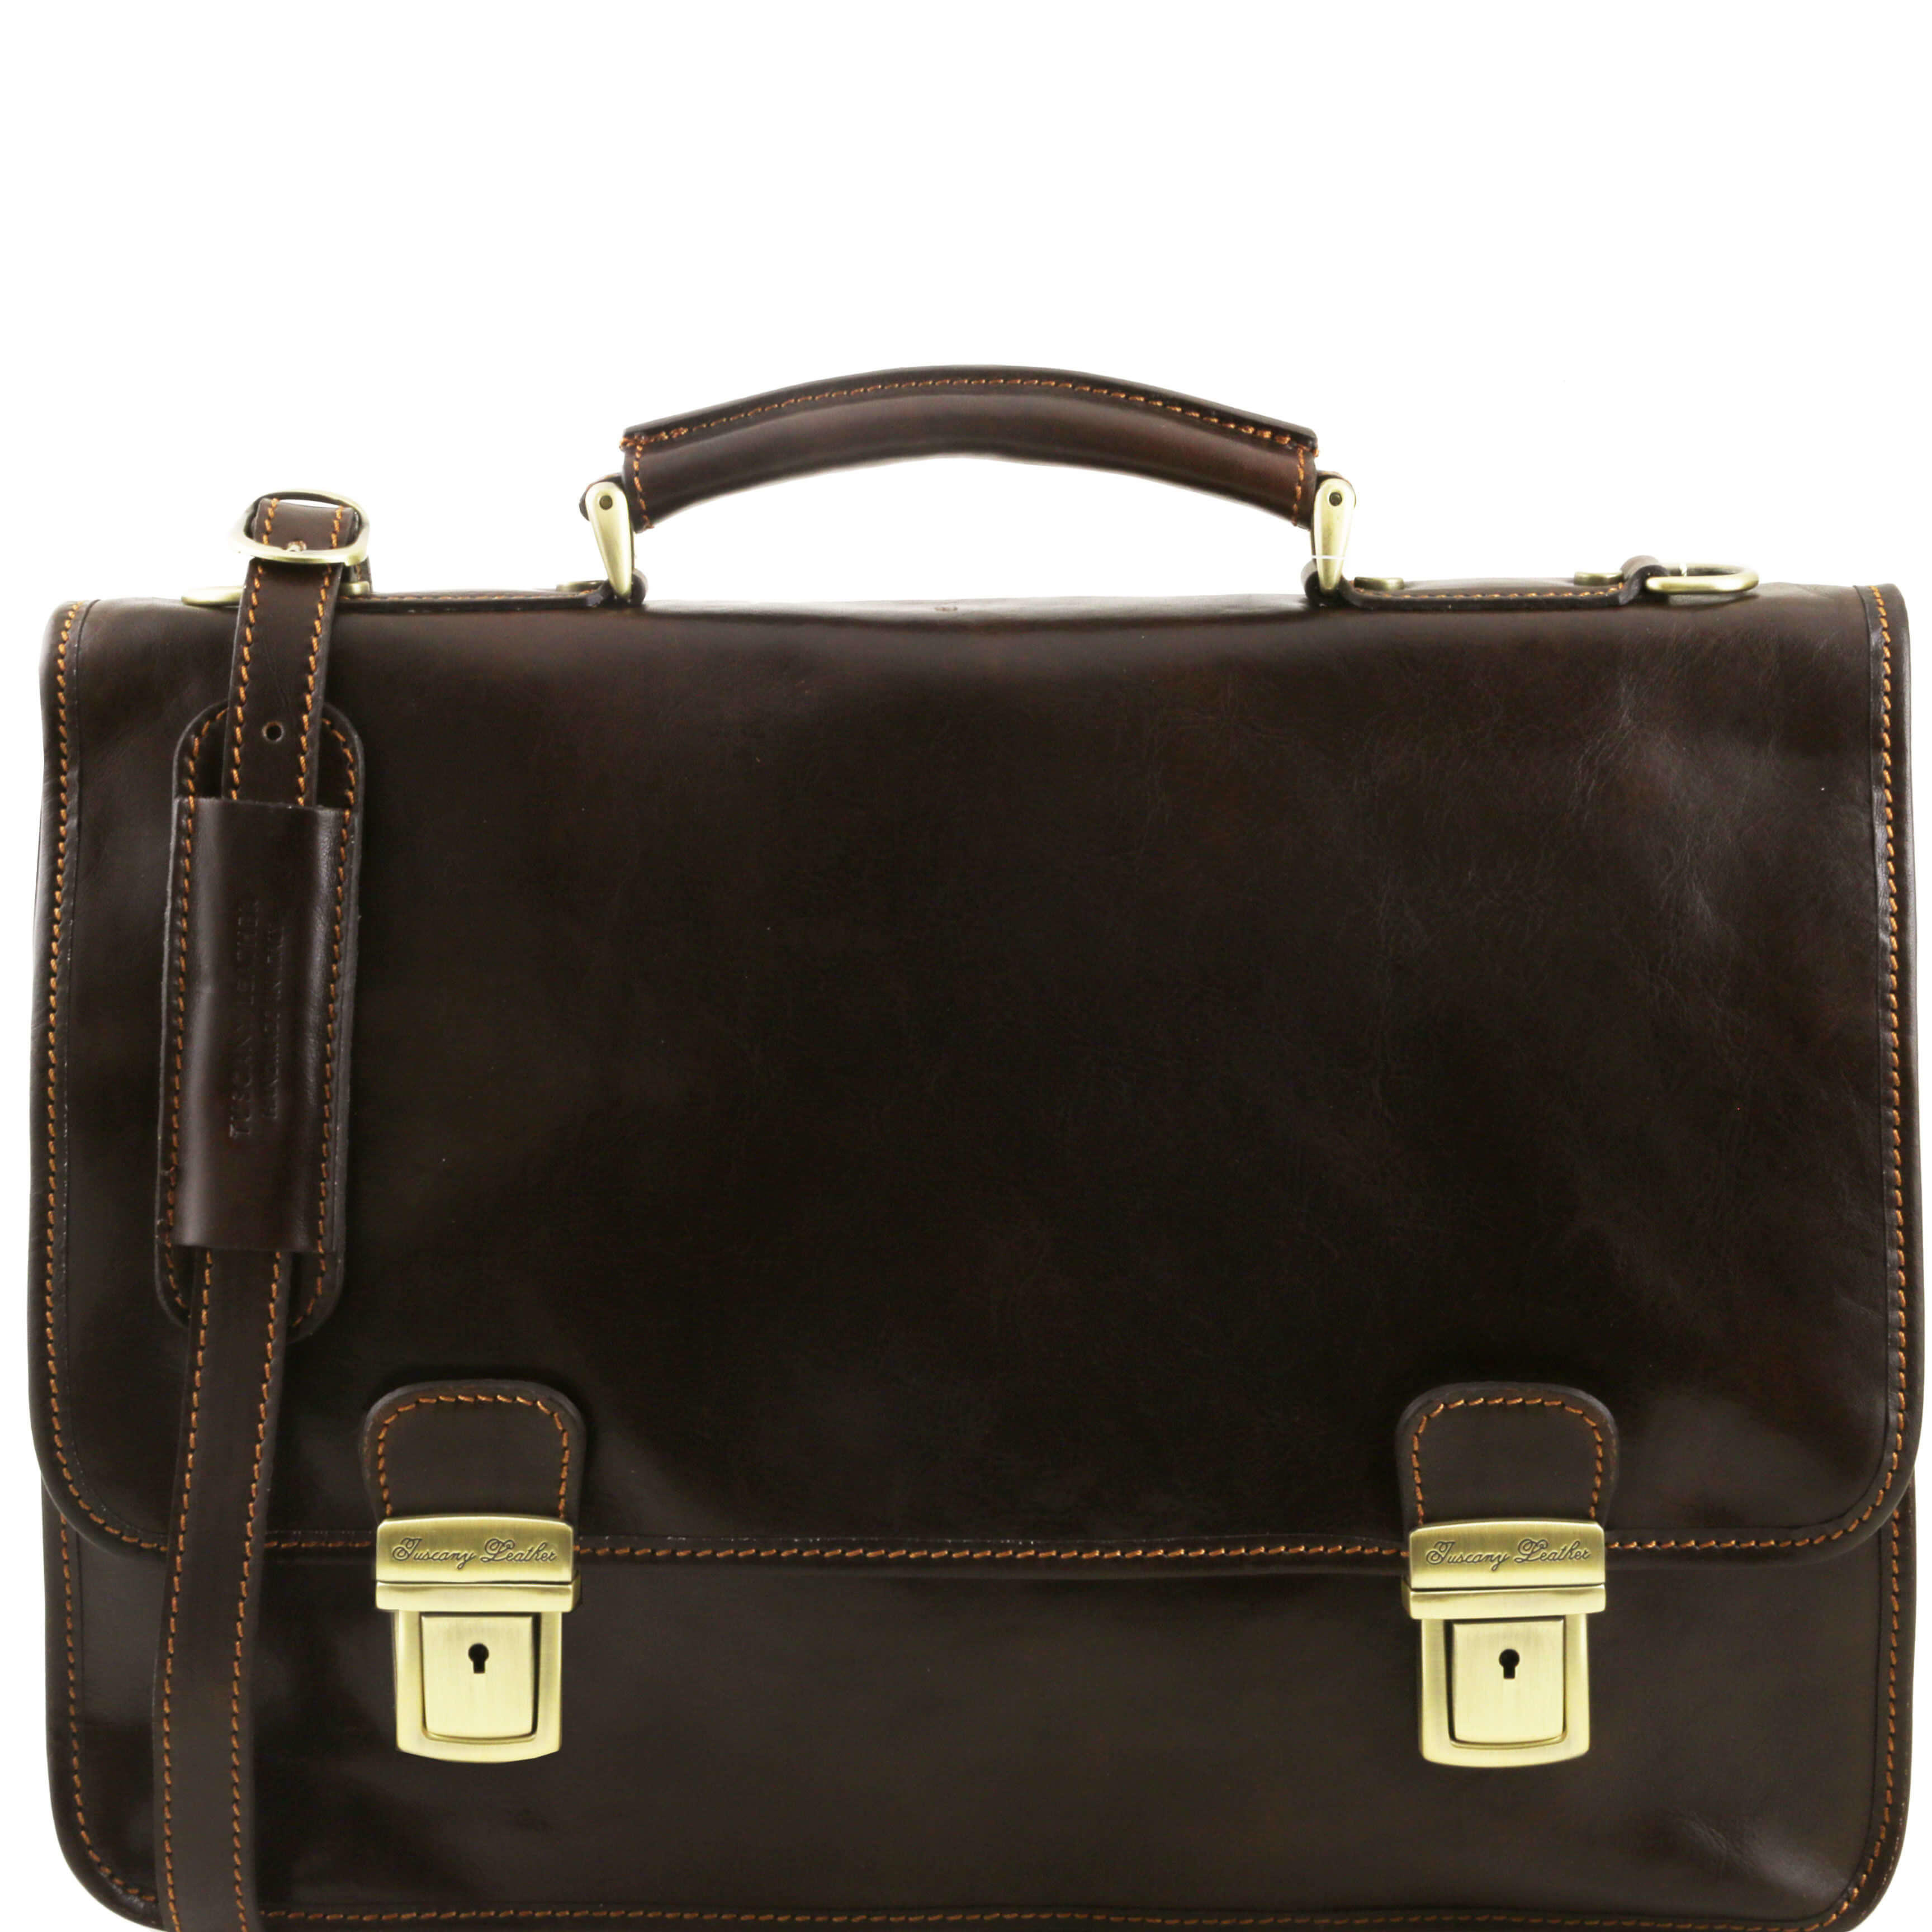 TL10028 Leather Firenze 2Compartment Satchel-Messenger-Briefcase